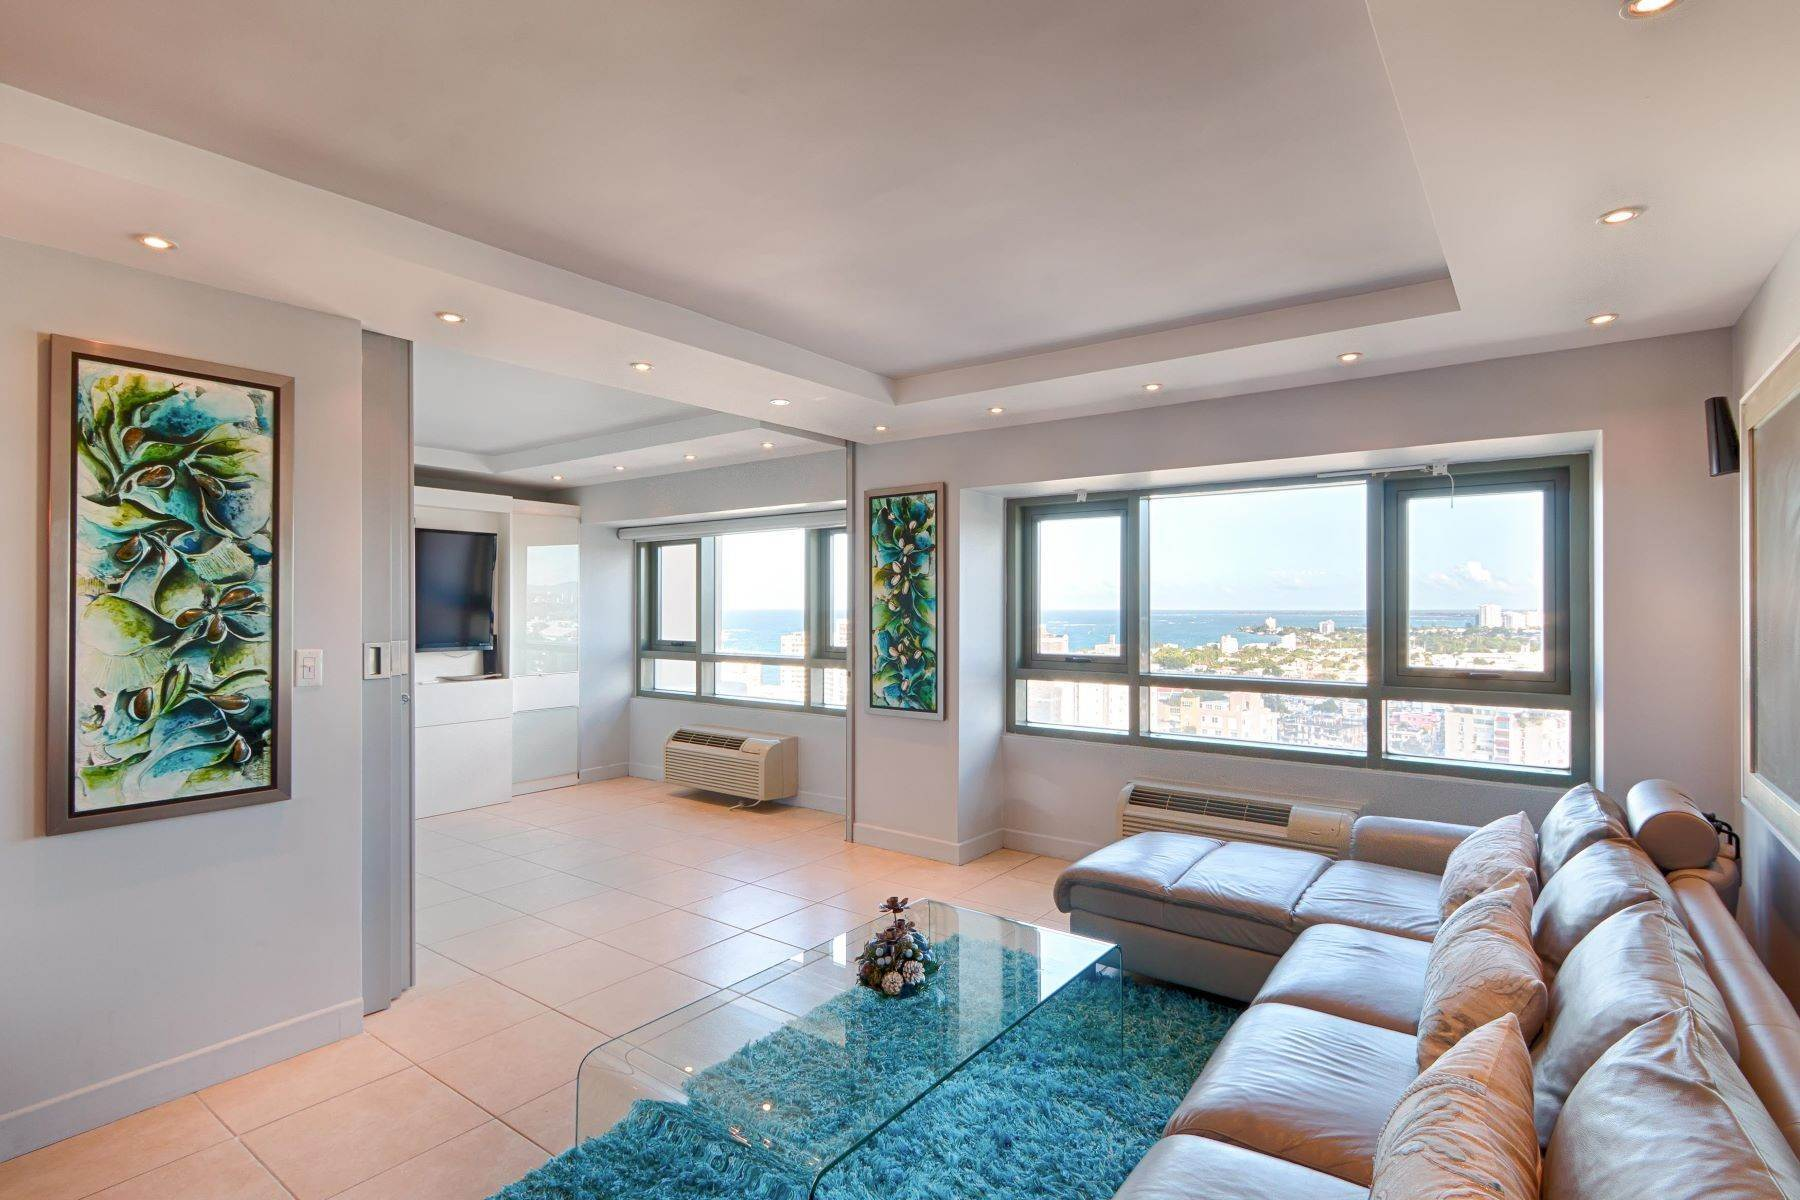 Apartments للـ Sale في Ocean Views at Gallery Plaza 103 Ave. de Diego, Apt. 2305N San Juan, 00911 Puerto Rico